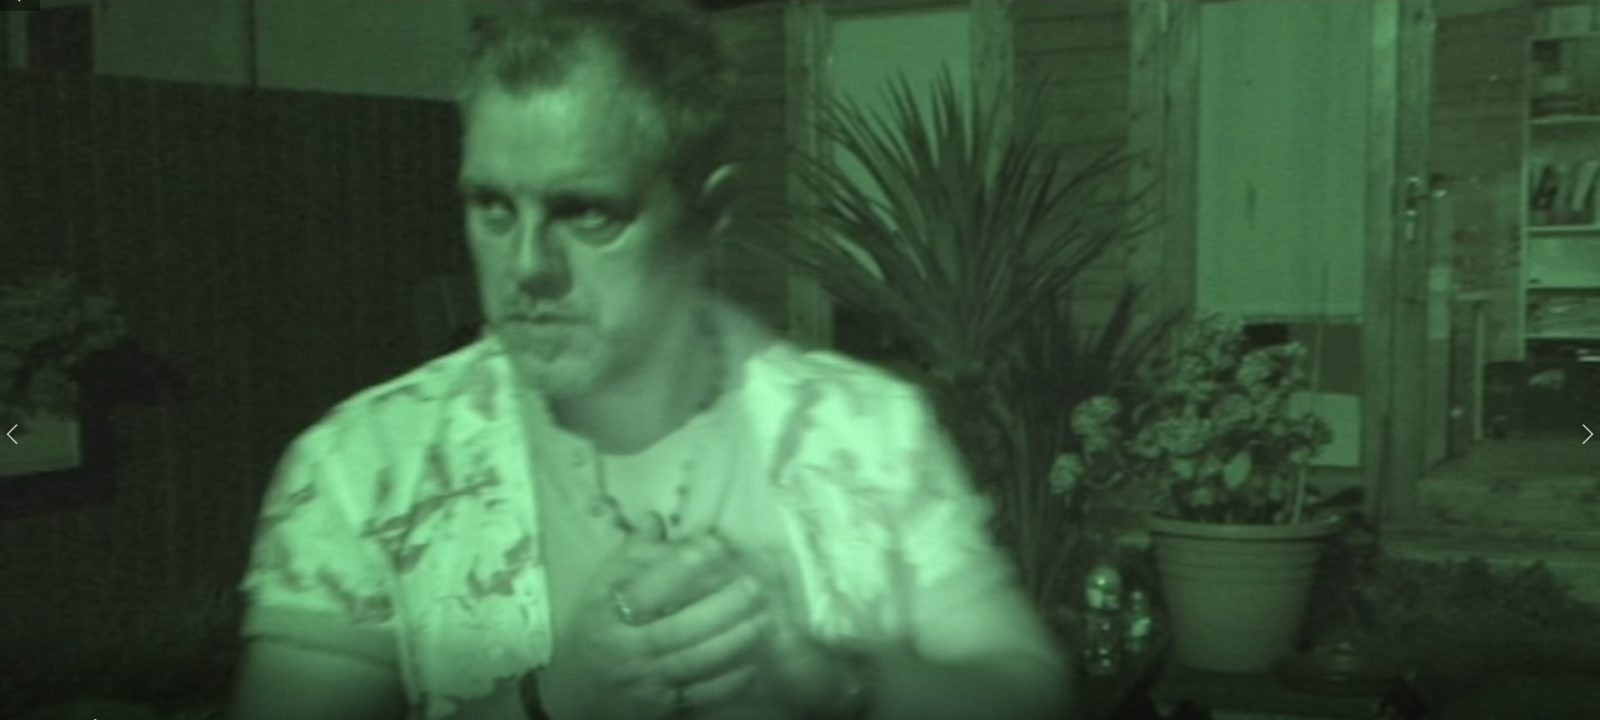 Richard offering help with paranormal activity to south Wales family